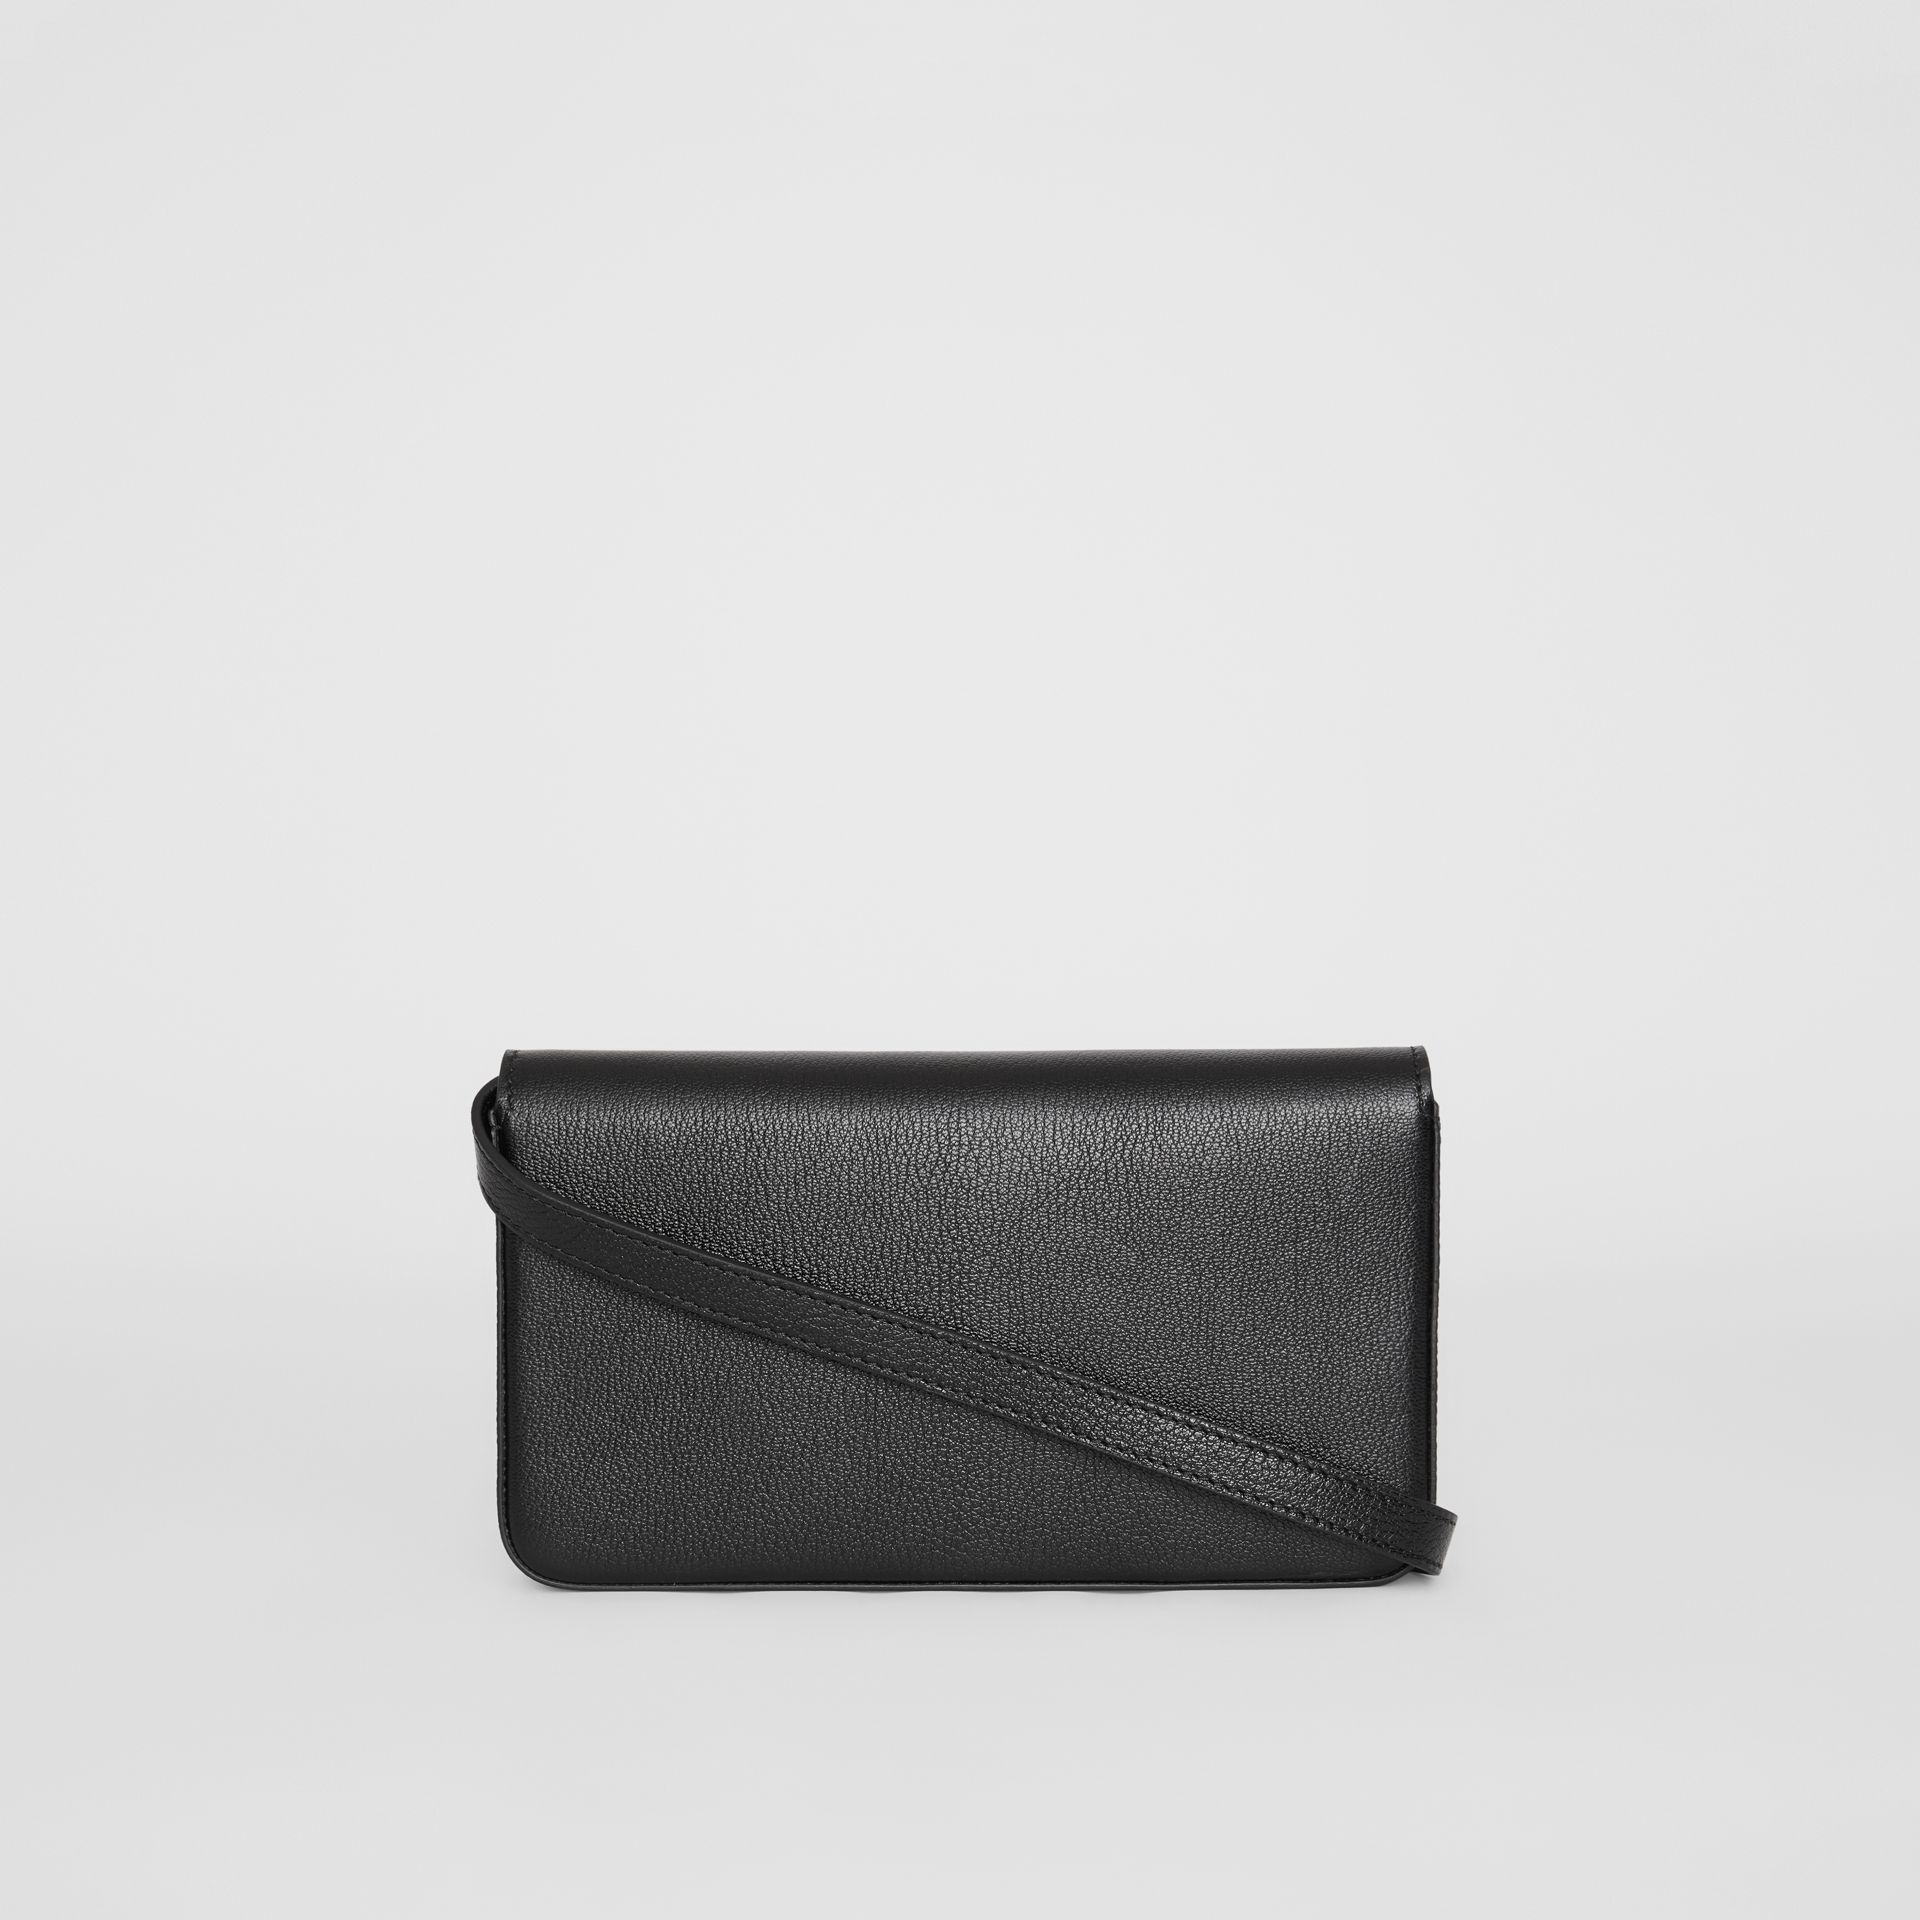 D-ring Leather Wallet with Detachable Strap in Black - Women | Burberry United Kingdom - gallery image 7